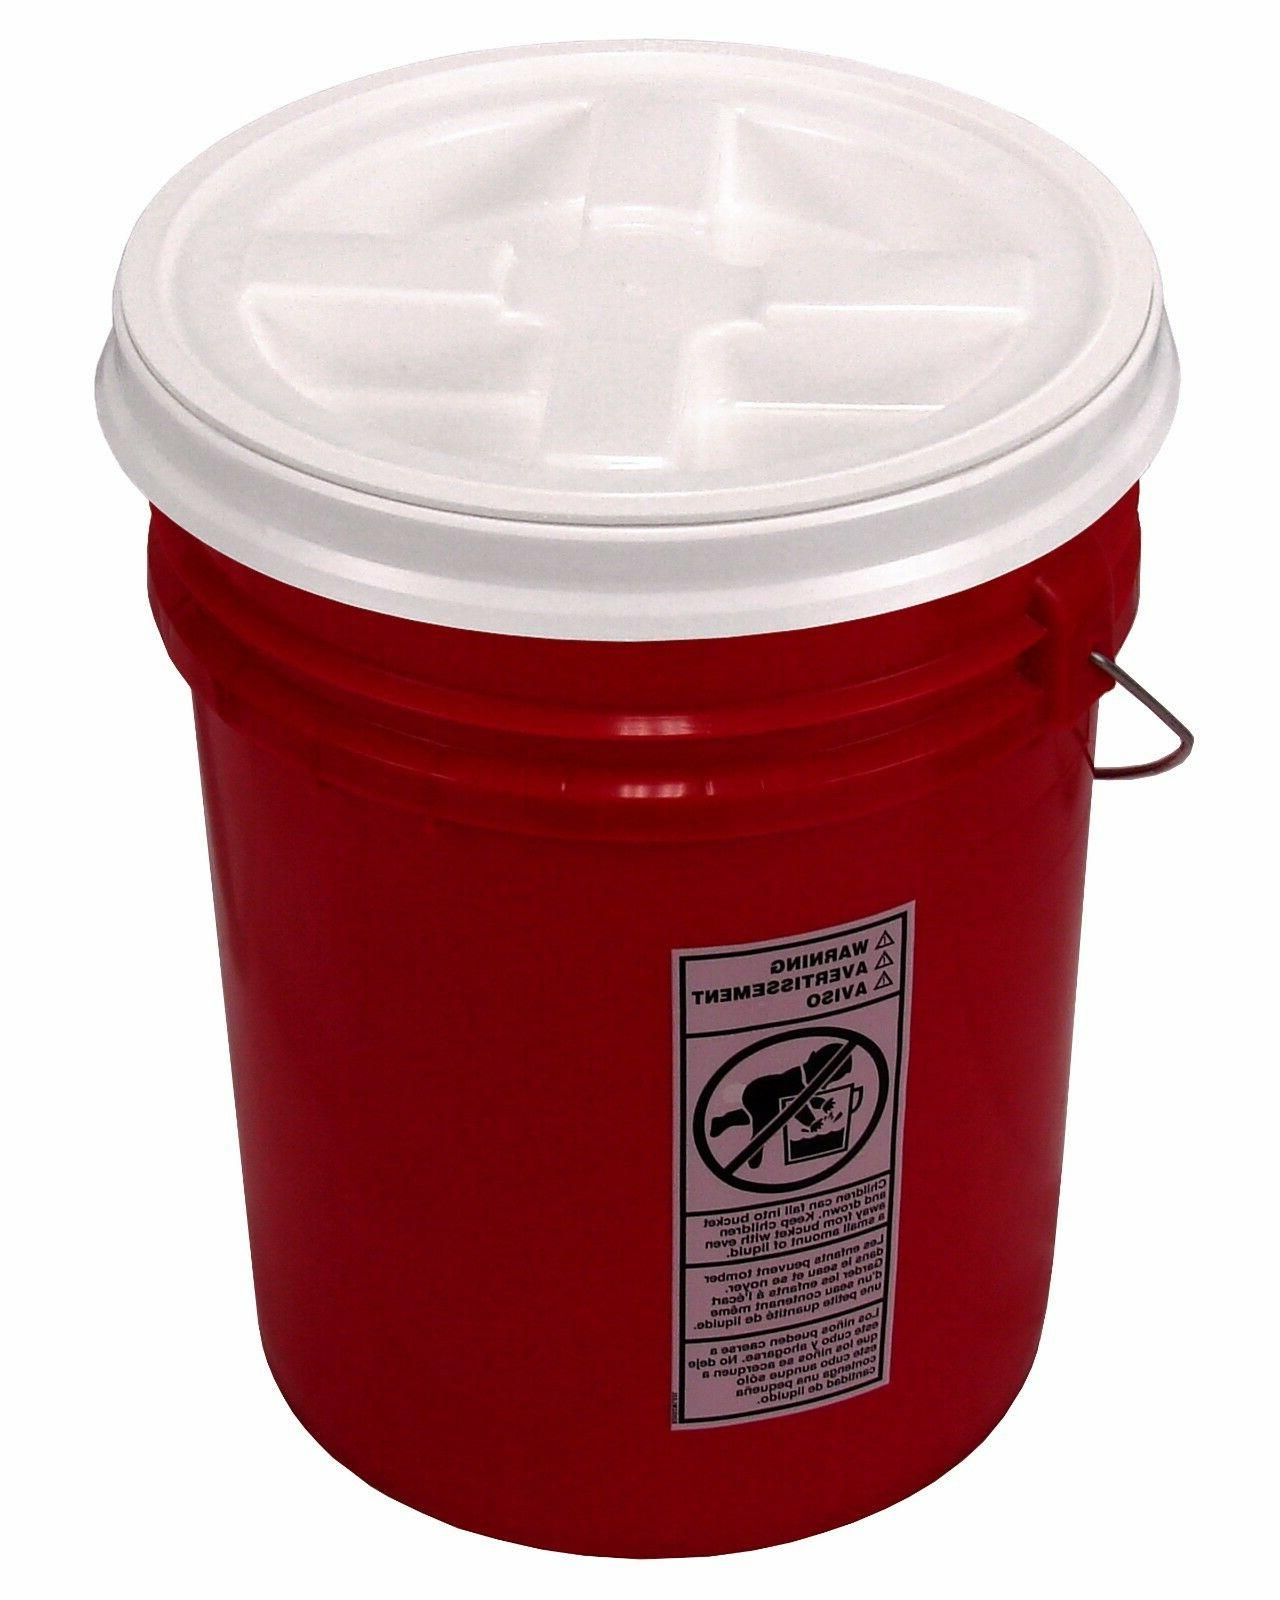 5 gallon red bucket with gamma seal